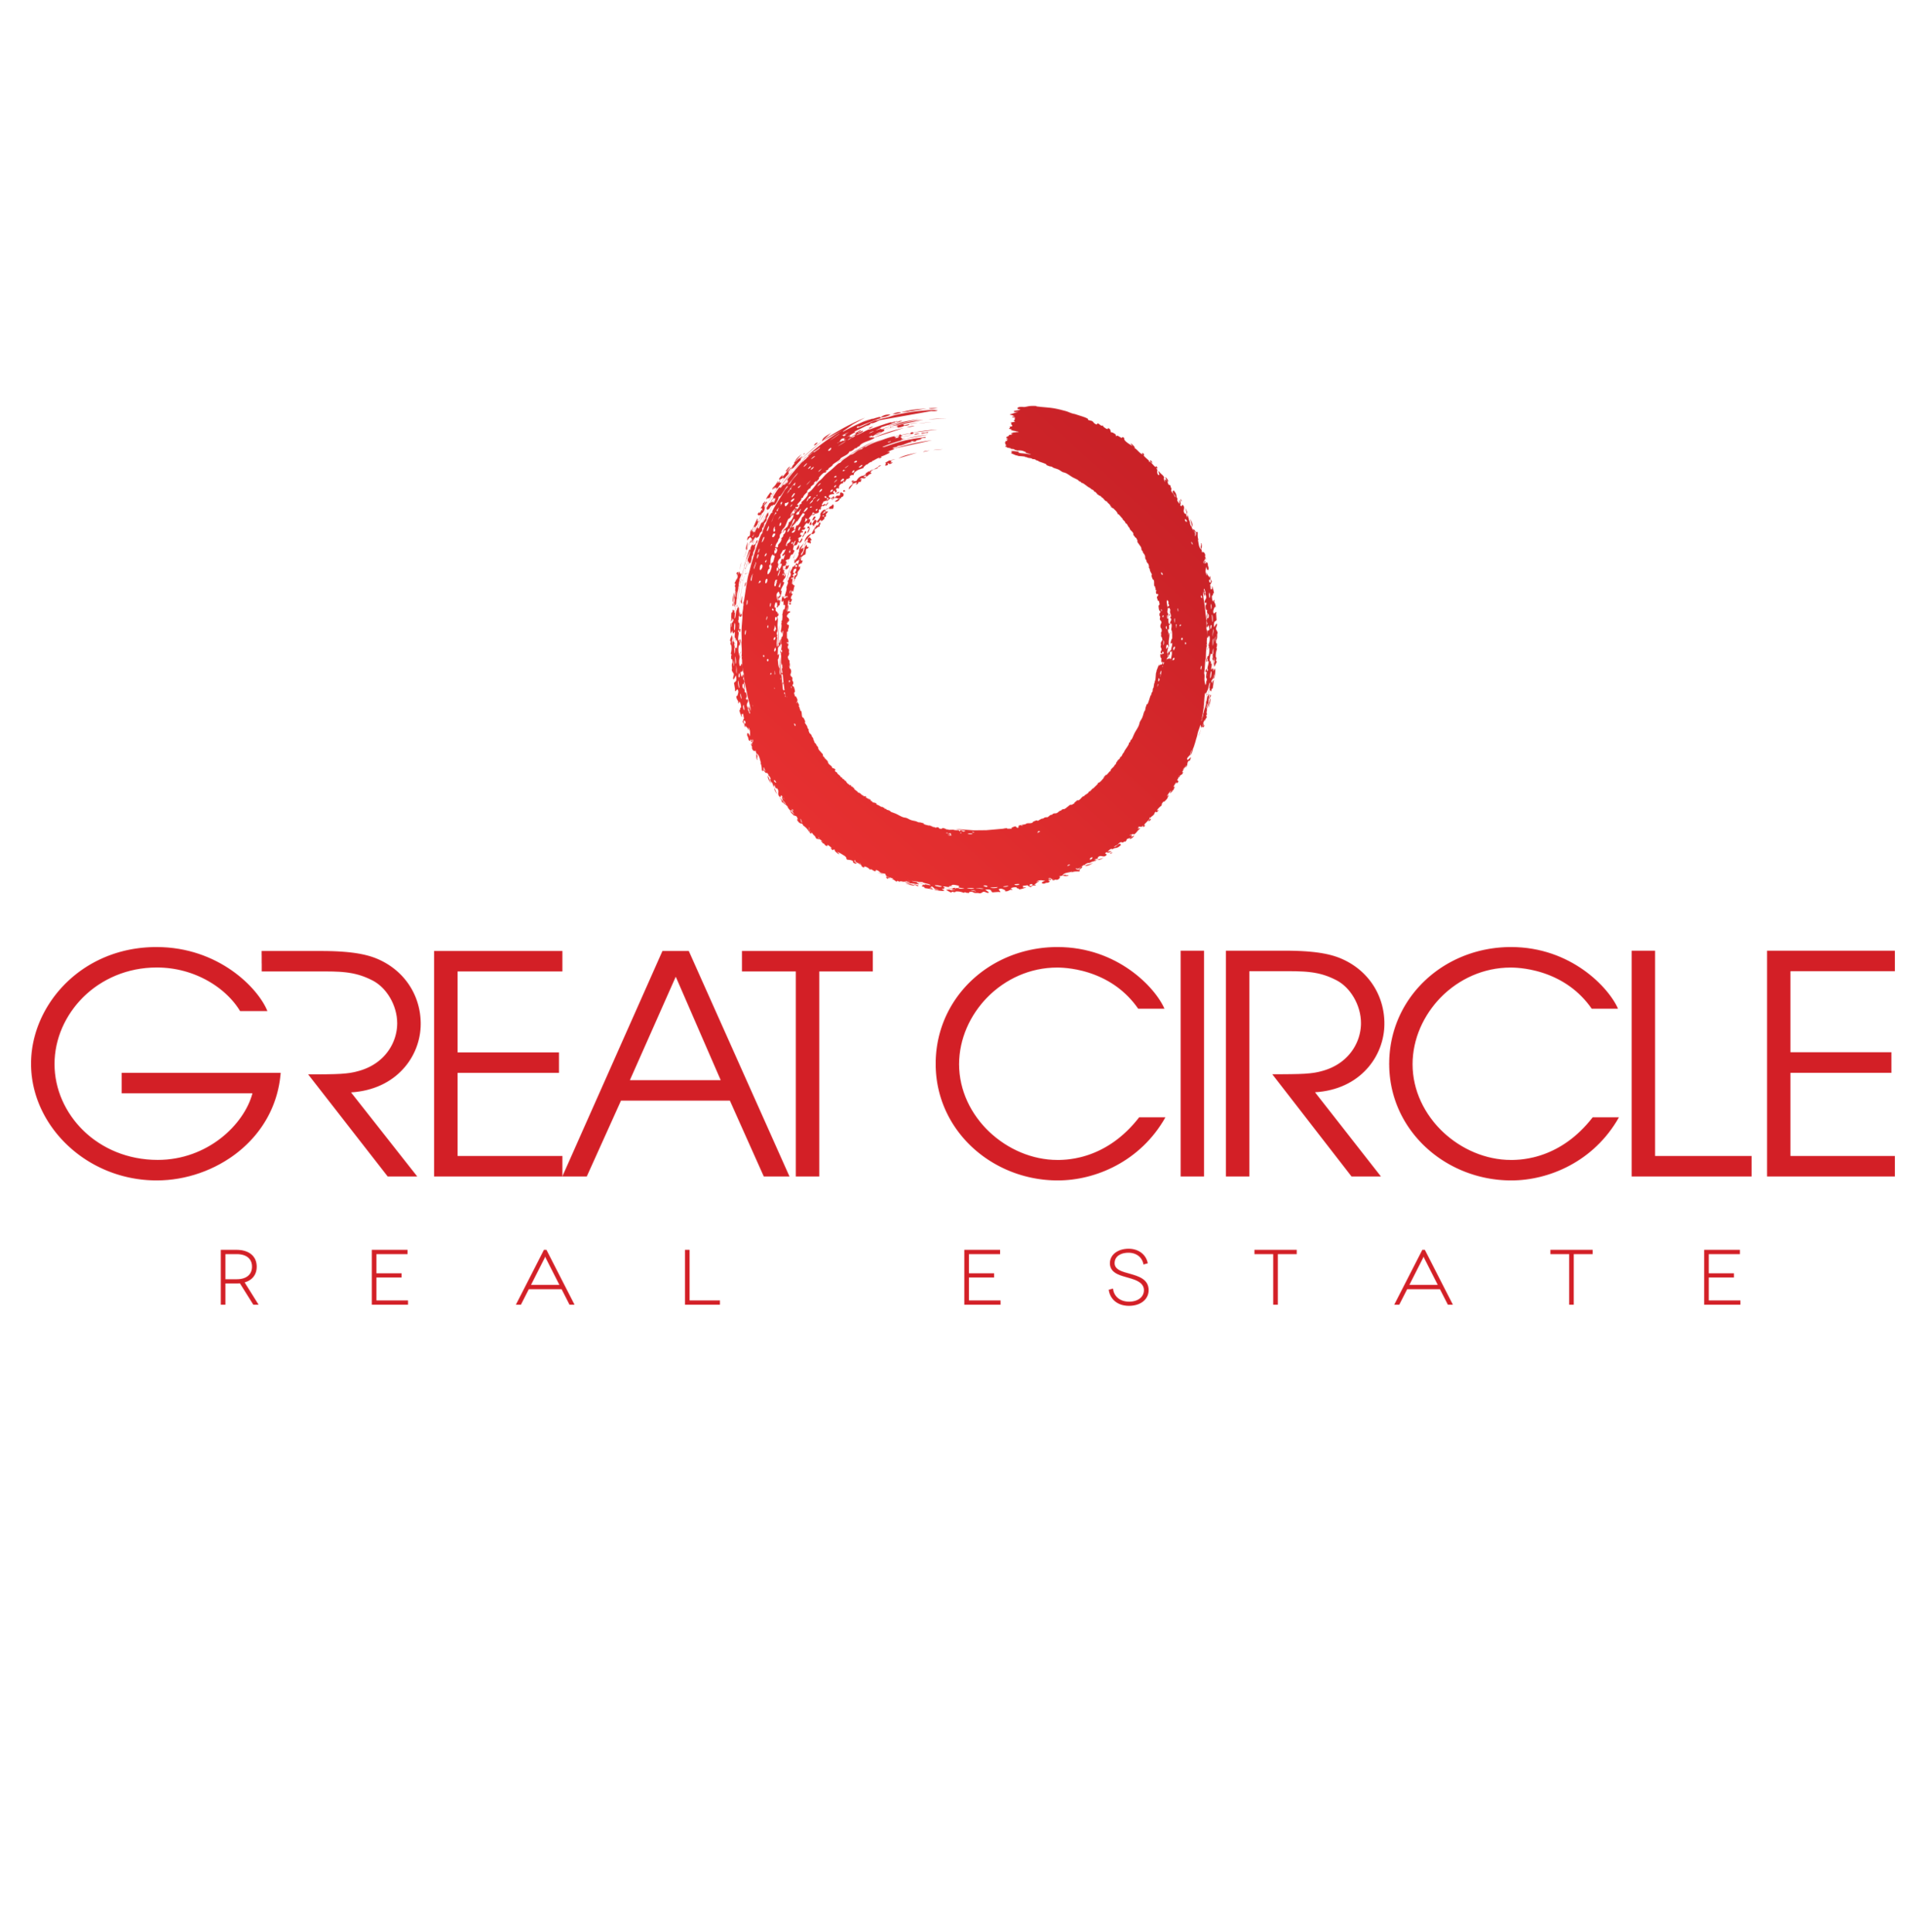 GreatCircle_Logo_Transparent.png